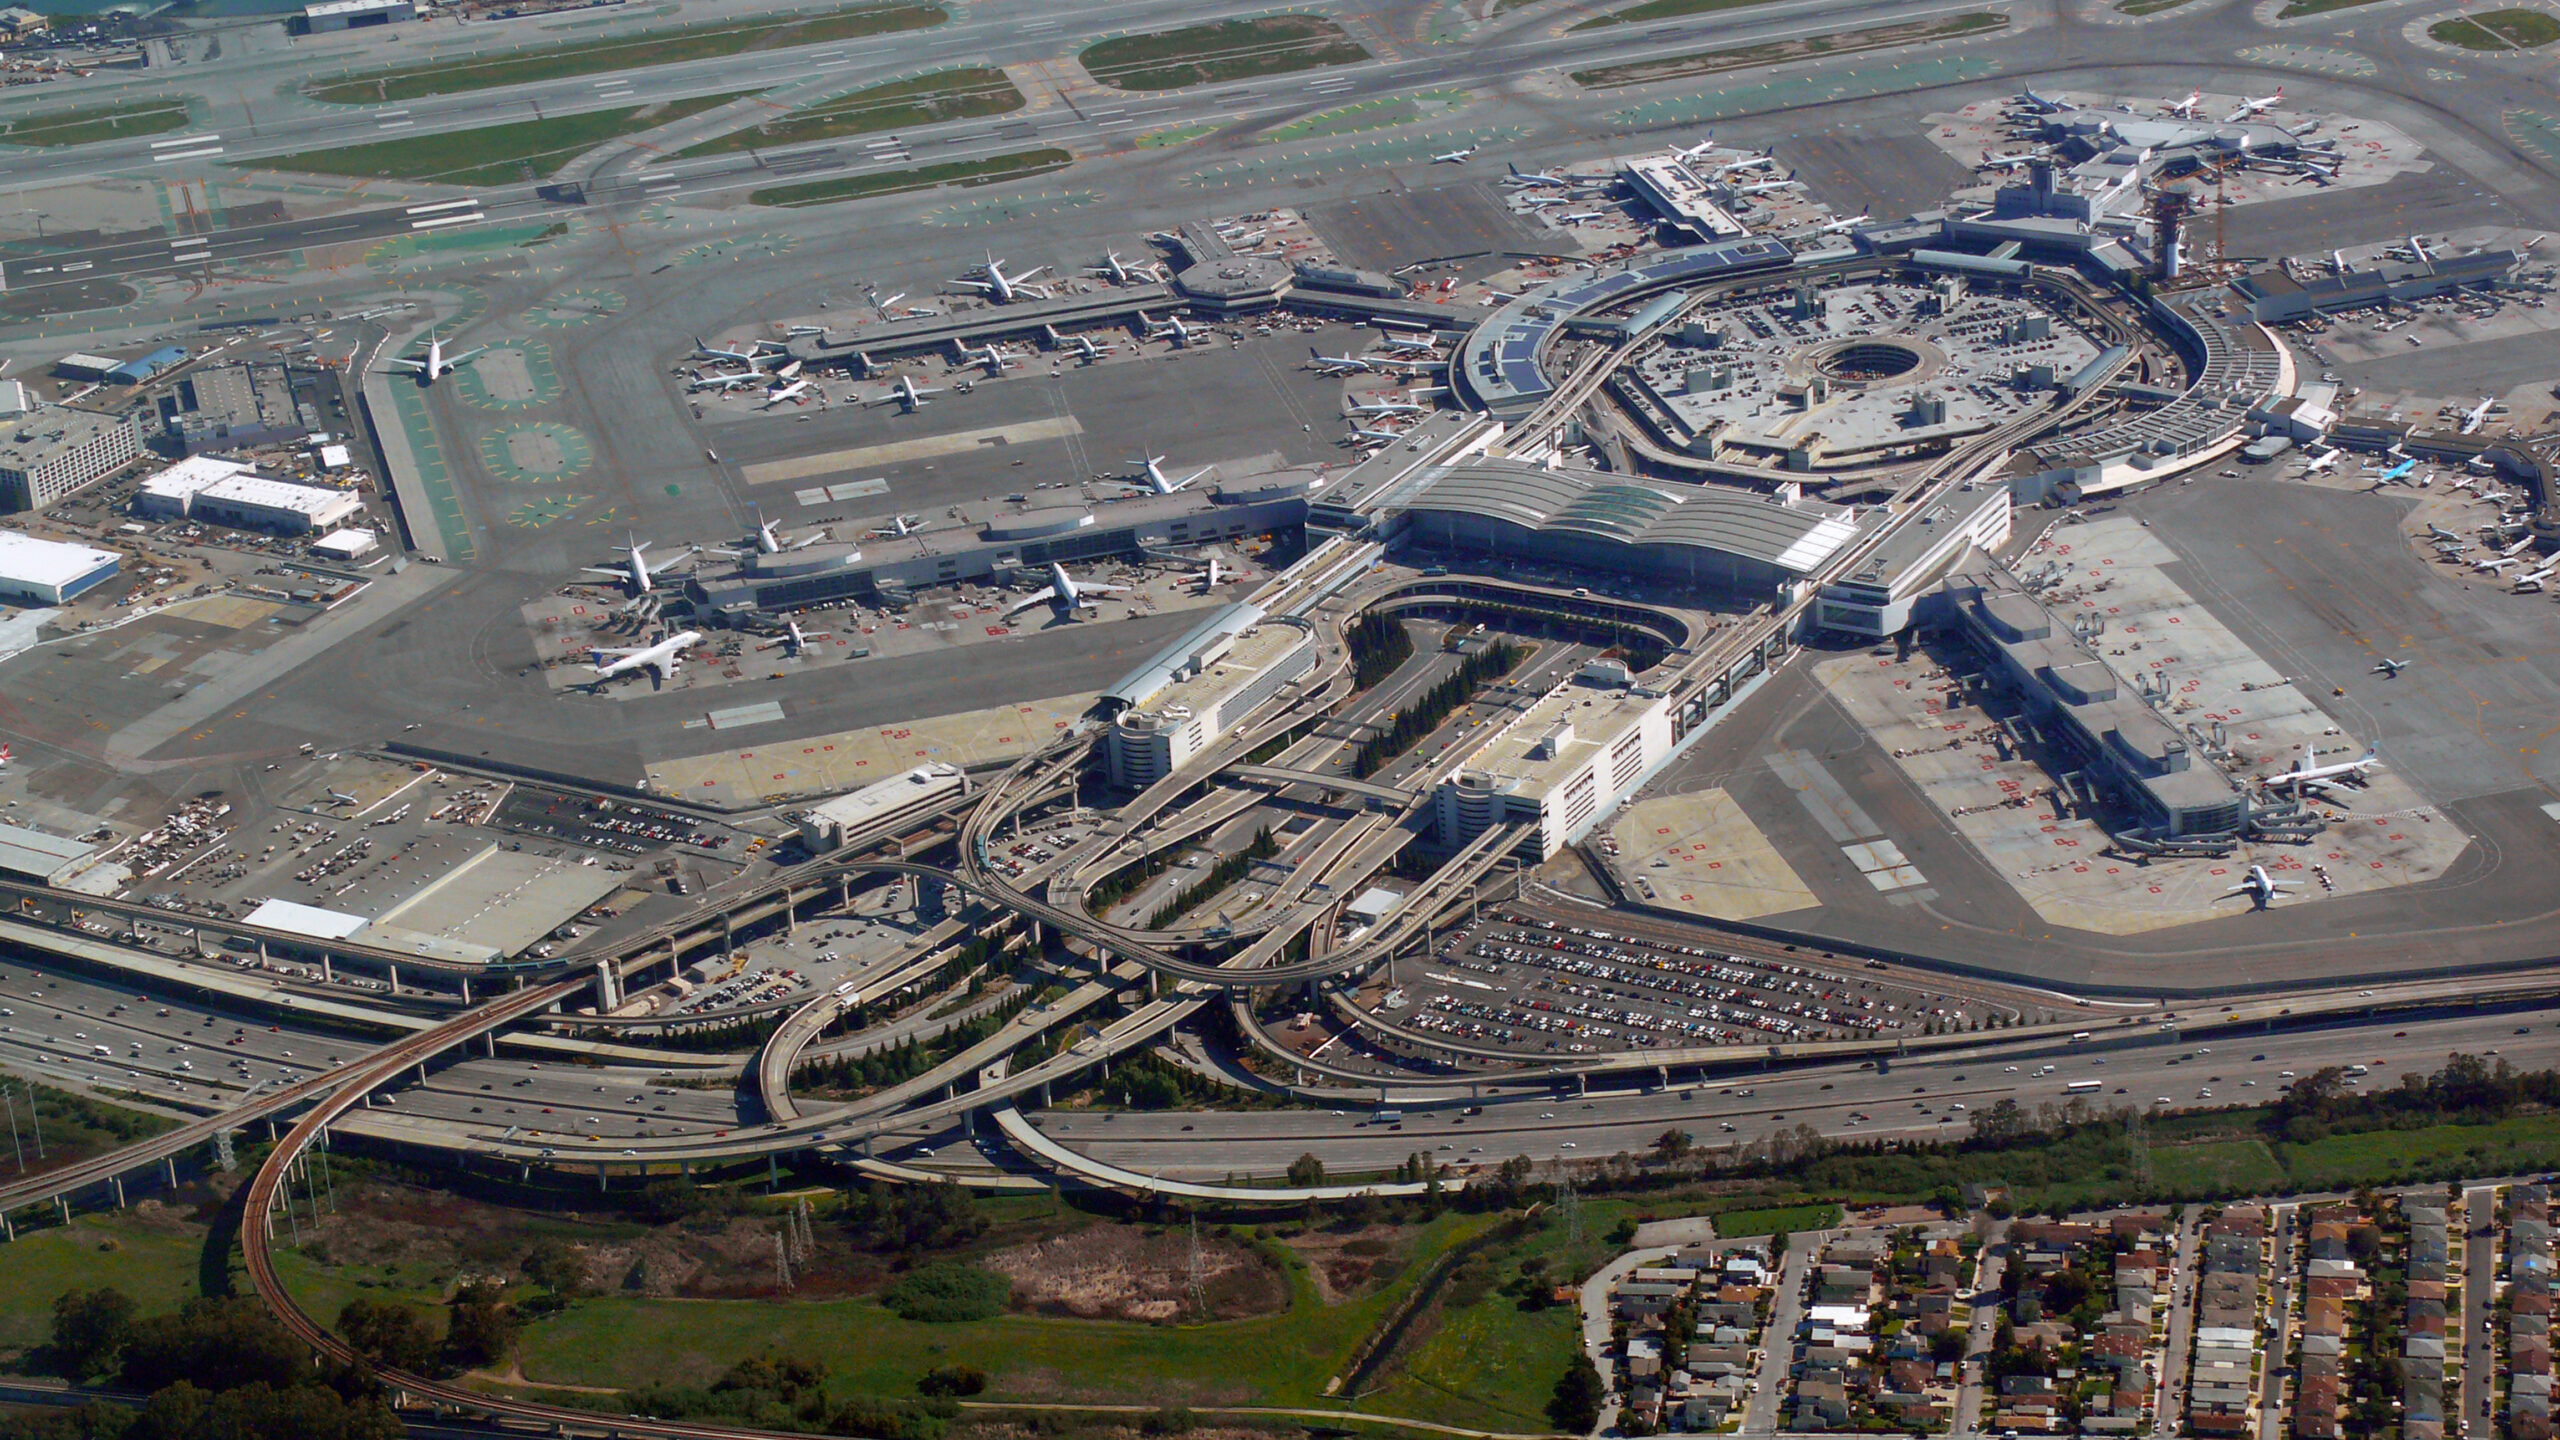 Pension Reform Newsletter: Leveraging airports to improve pension solvency, the future of reform in Pennsylvania, and more